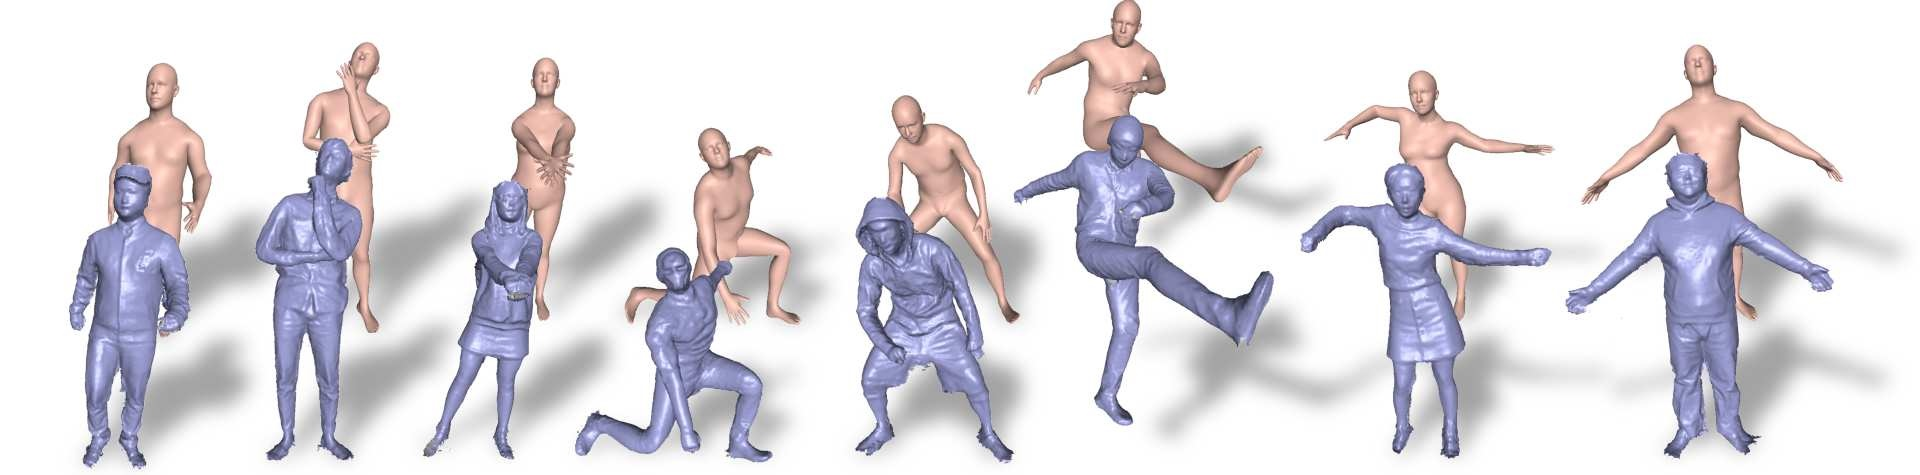 What's under those clothes? This system tracks body shapes in real time models